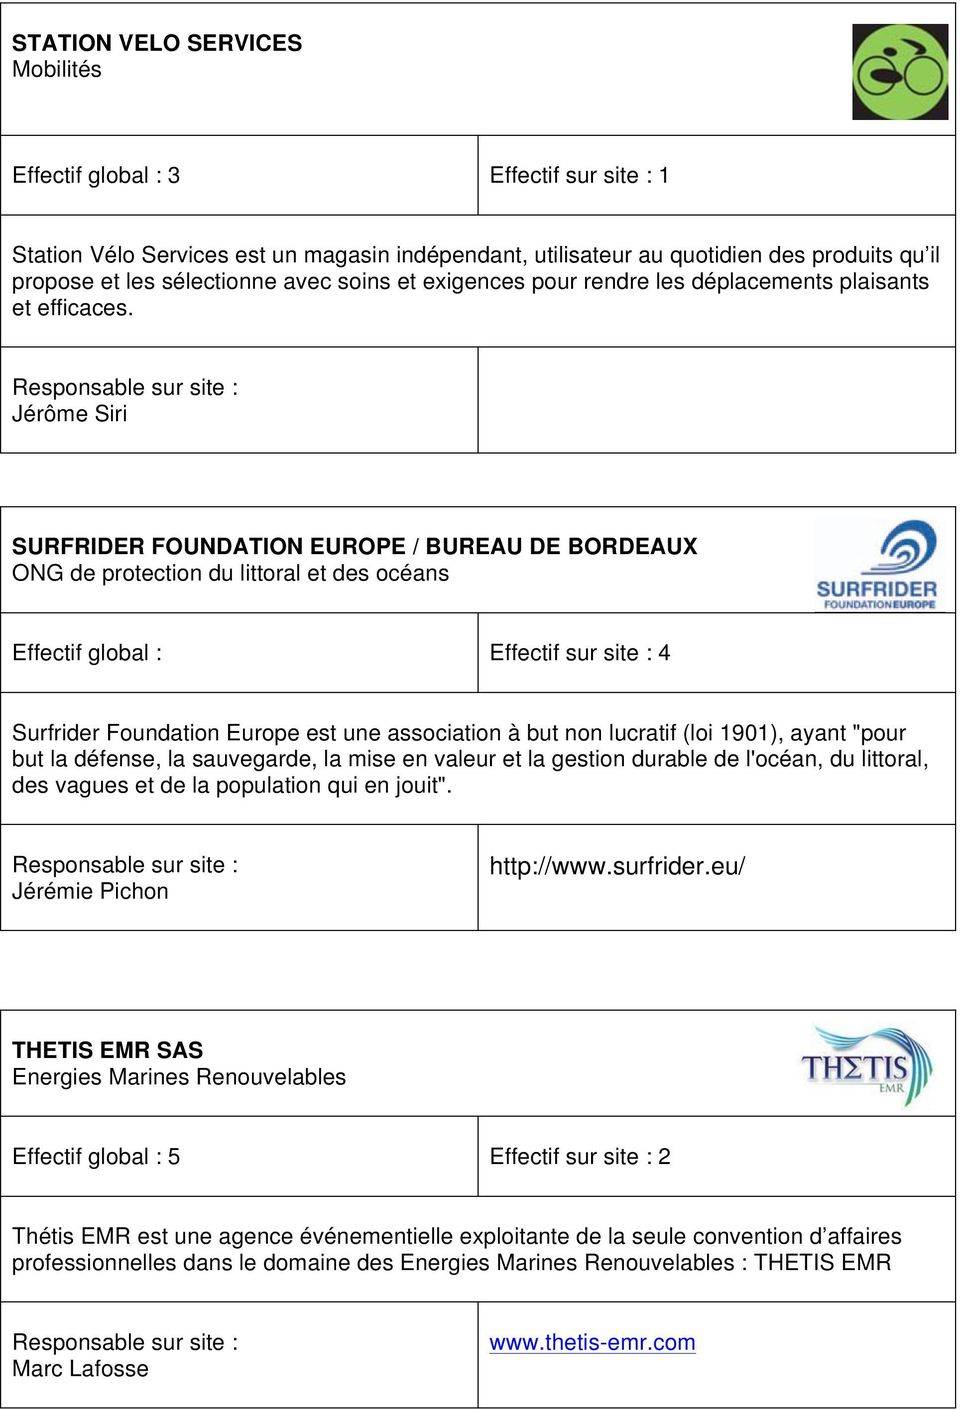 Jérôme Siri SURFRIDER FOUNDATION EUROPE / BUREAU DE BORDEAUX ONG de protection du littoral et des océans Effectif global : Effectif sur site : 4 Surfrider Foundation Europe est une association à but